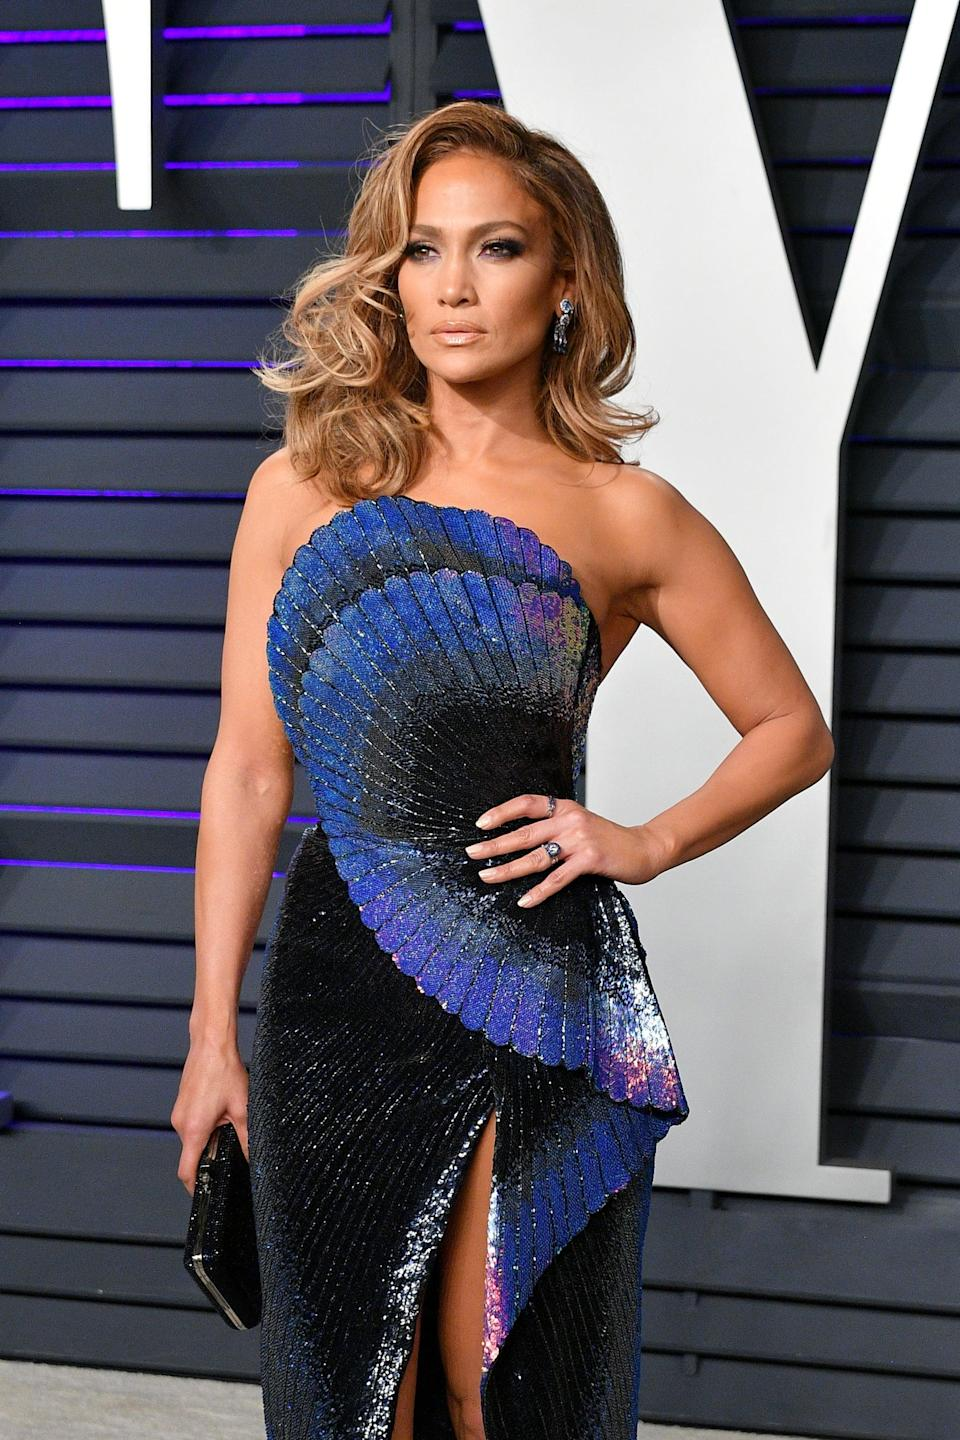 BEVERLY HILLS, CA - FEBRUARY 24:  Jennifer Lopez attends the 2019 Vanity Fair Oscar Party hosted by Radhika Jones at Wallis Annenberg Center for the Performing Arts on February 24, 2019 in Beverly Hills, California.  (Photo by Dia Dipasupil/Getty Images)